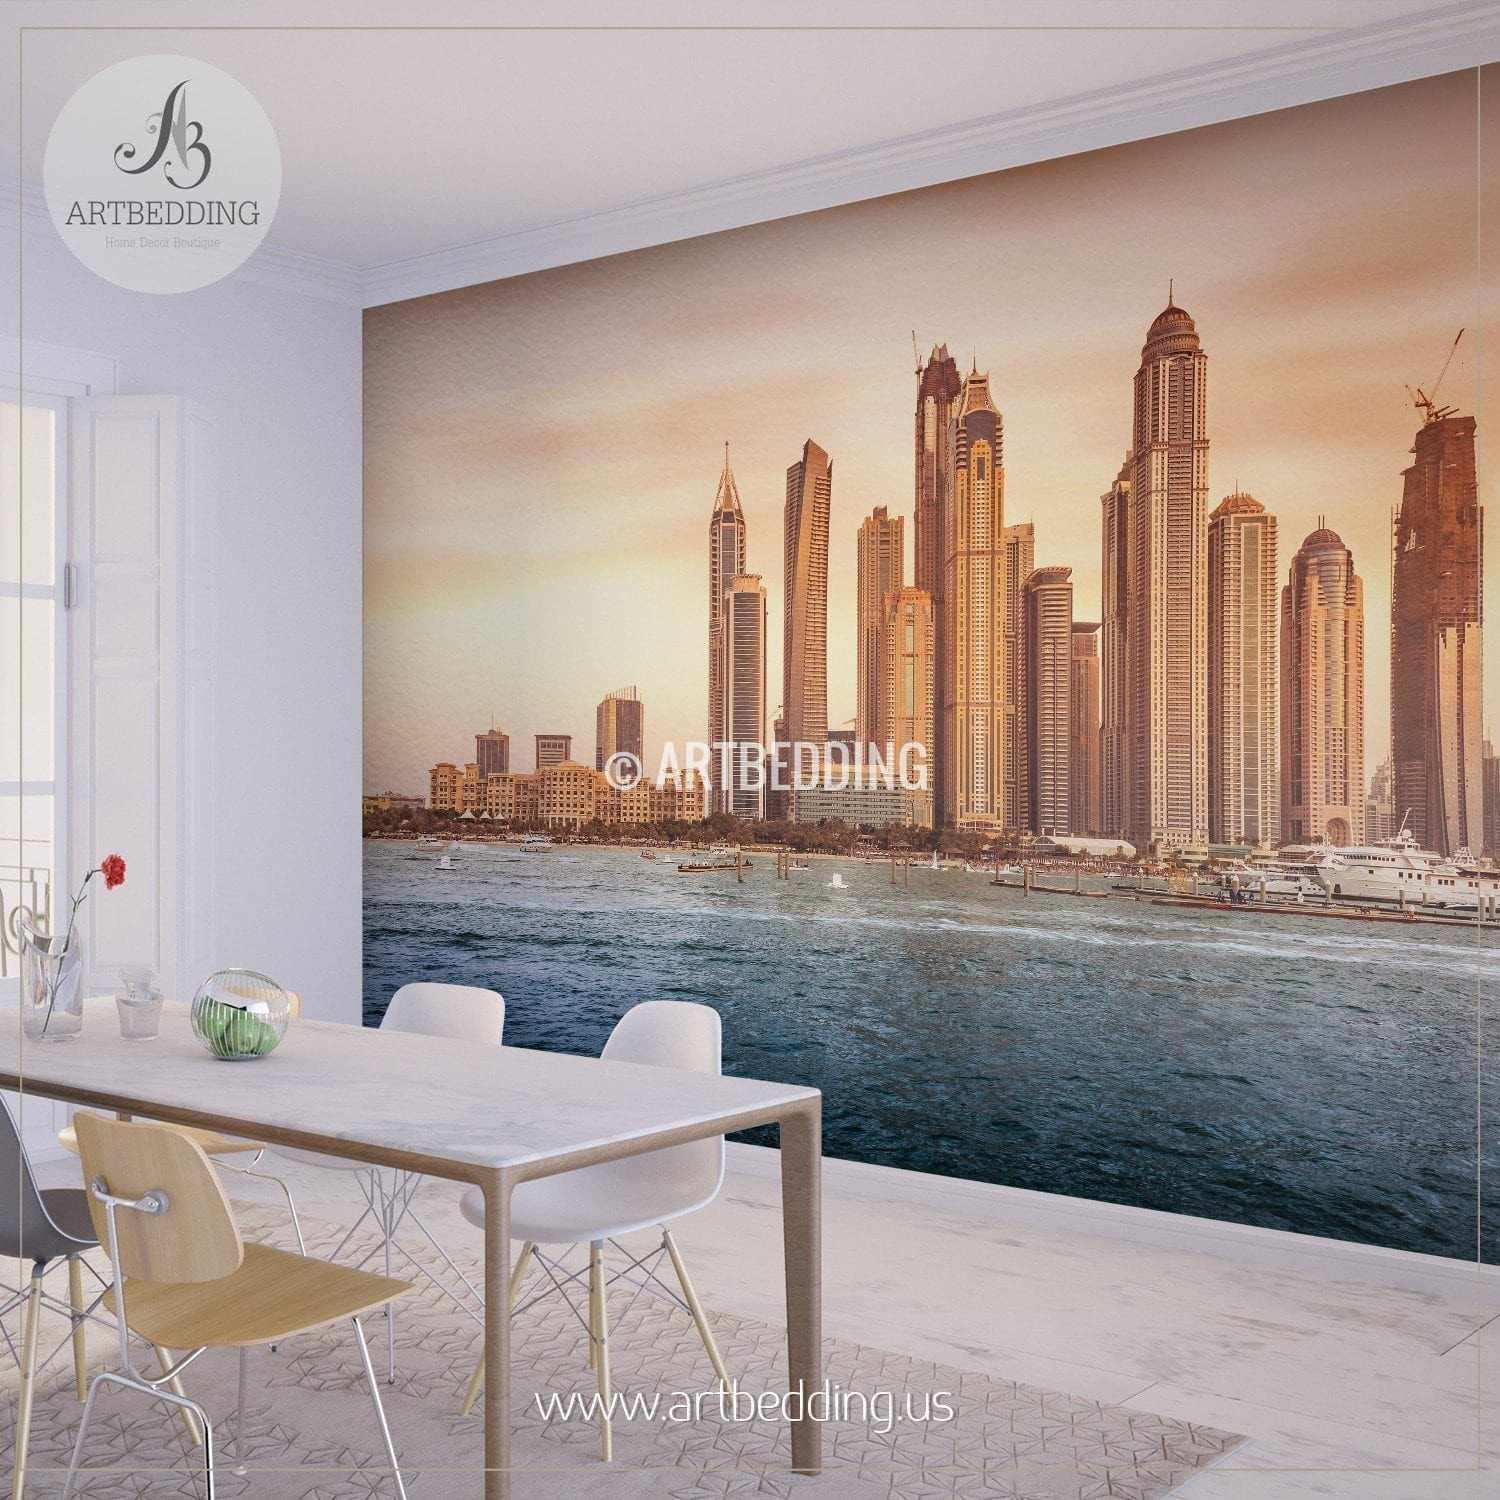 Beautiful dubai cityscape wall mural dubai photo sticker dubai beautiful dubai cityscape wall mural dubai photo sticker dubai wall decor wall mural amipublicfo Image collections